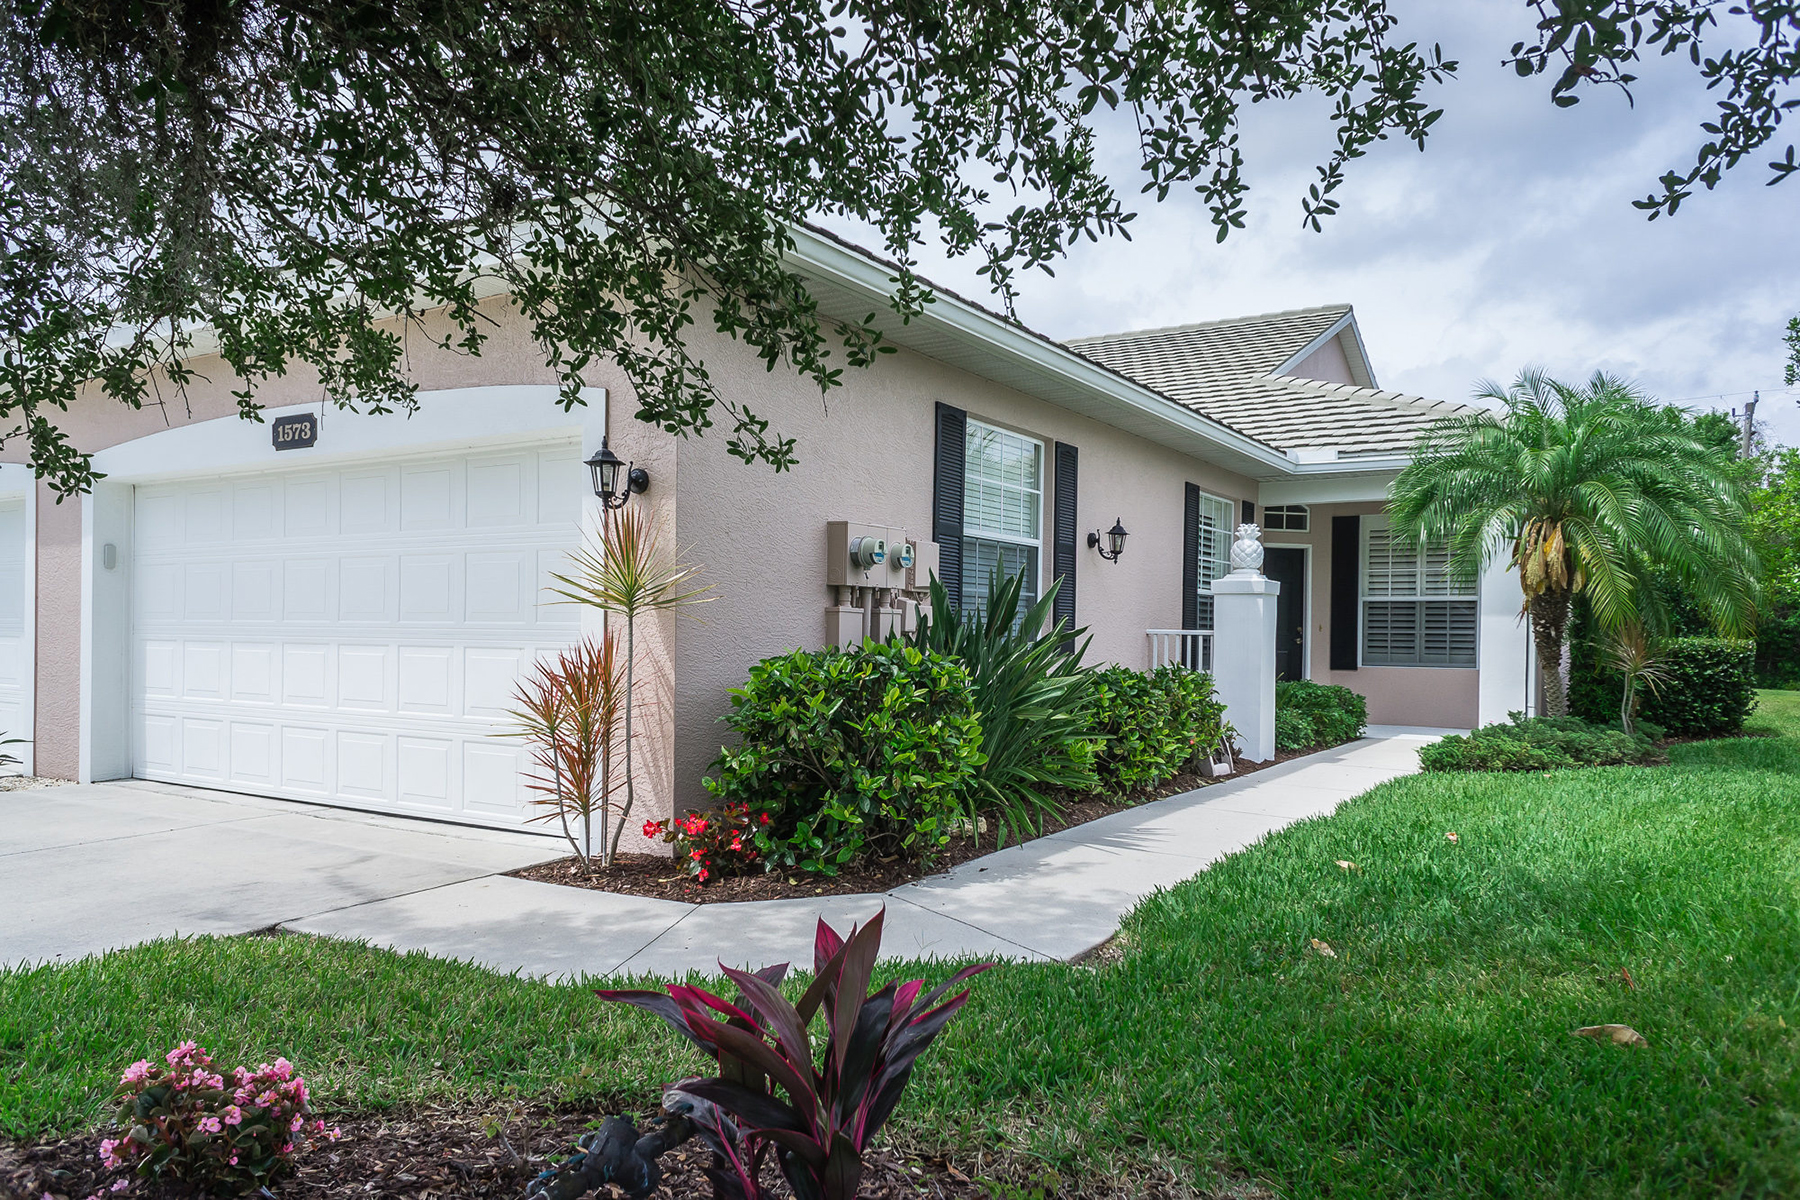 Townhouse for Sale at PLANTATION GOLF & COUNTRY CLUB 1573 Monarch Dr 1573 Venice, Florida, 34293 United States